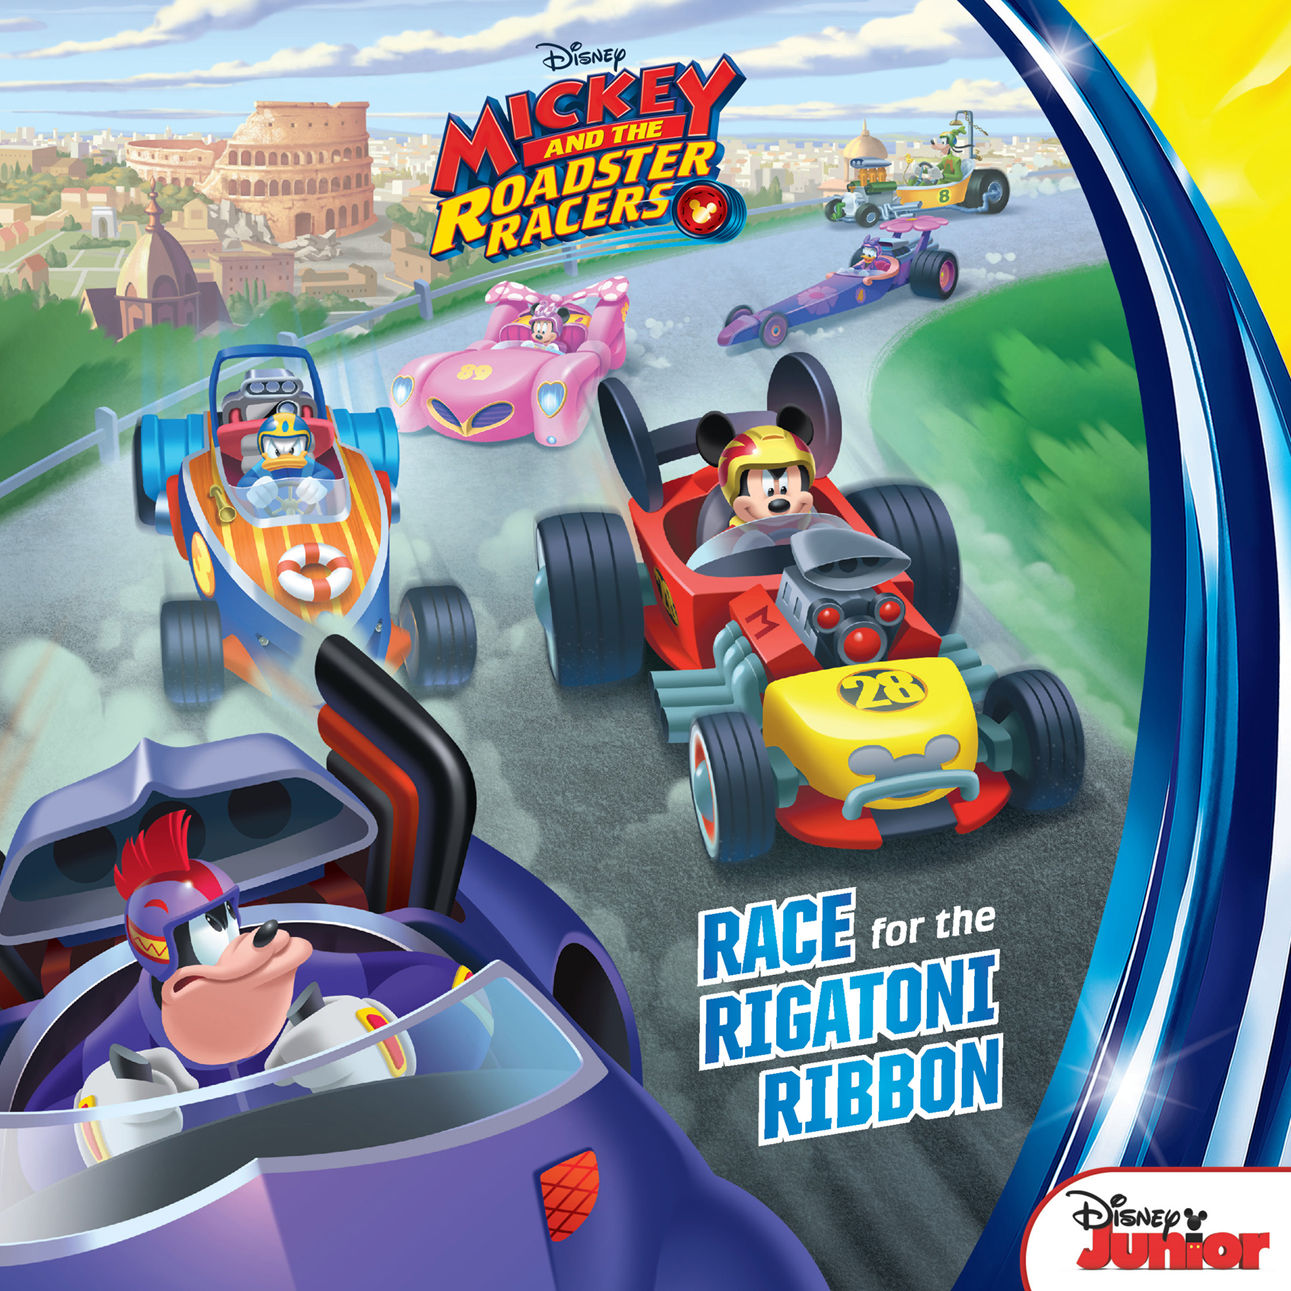 Mickey and the Roadster Racers Race for the Rigatoni Ribbon Paperback